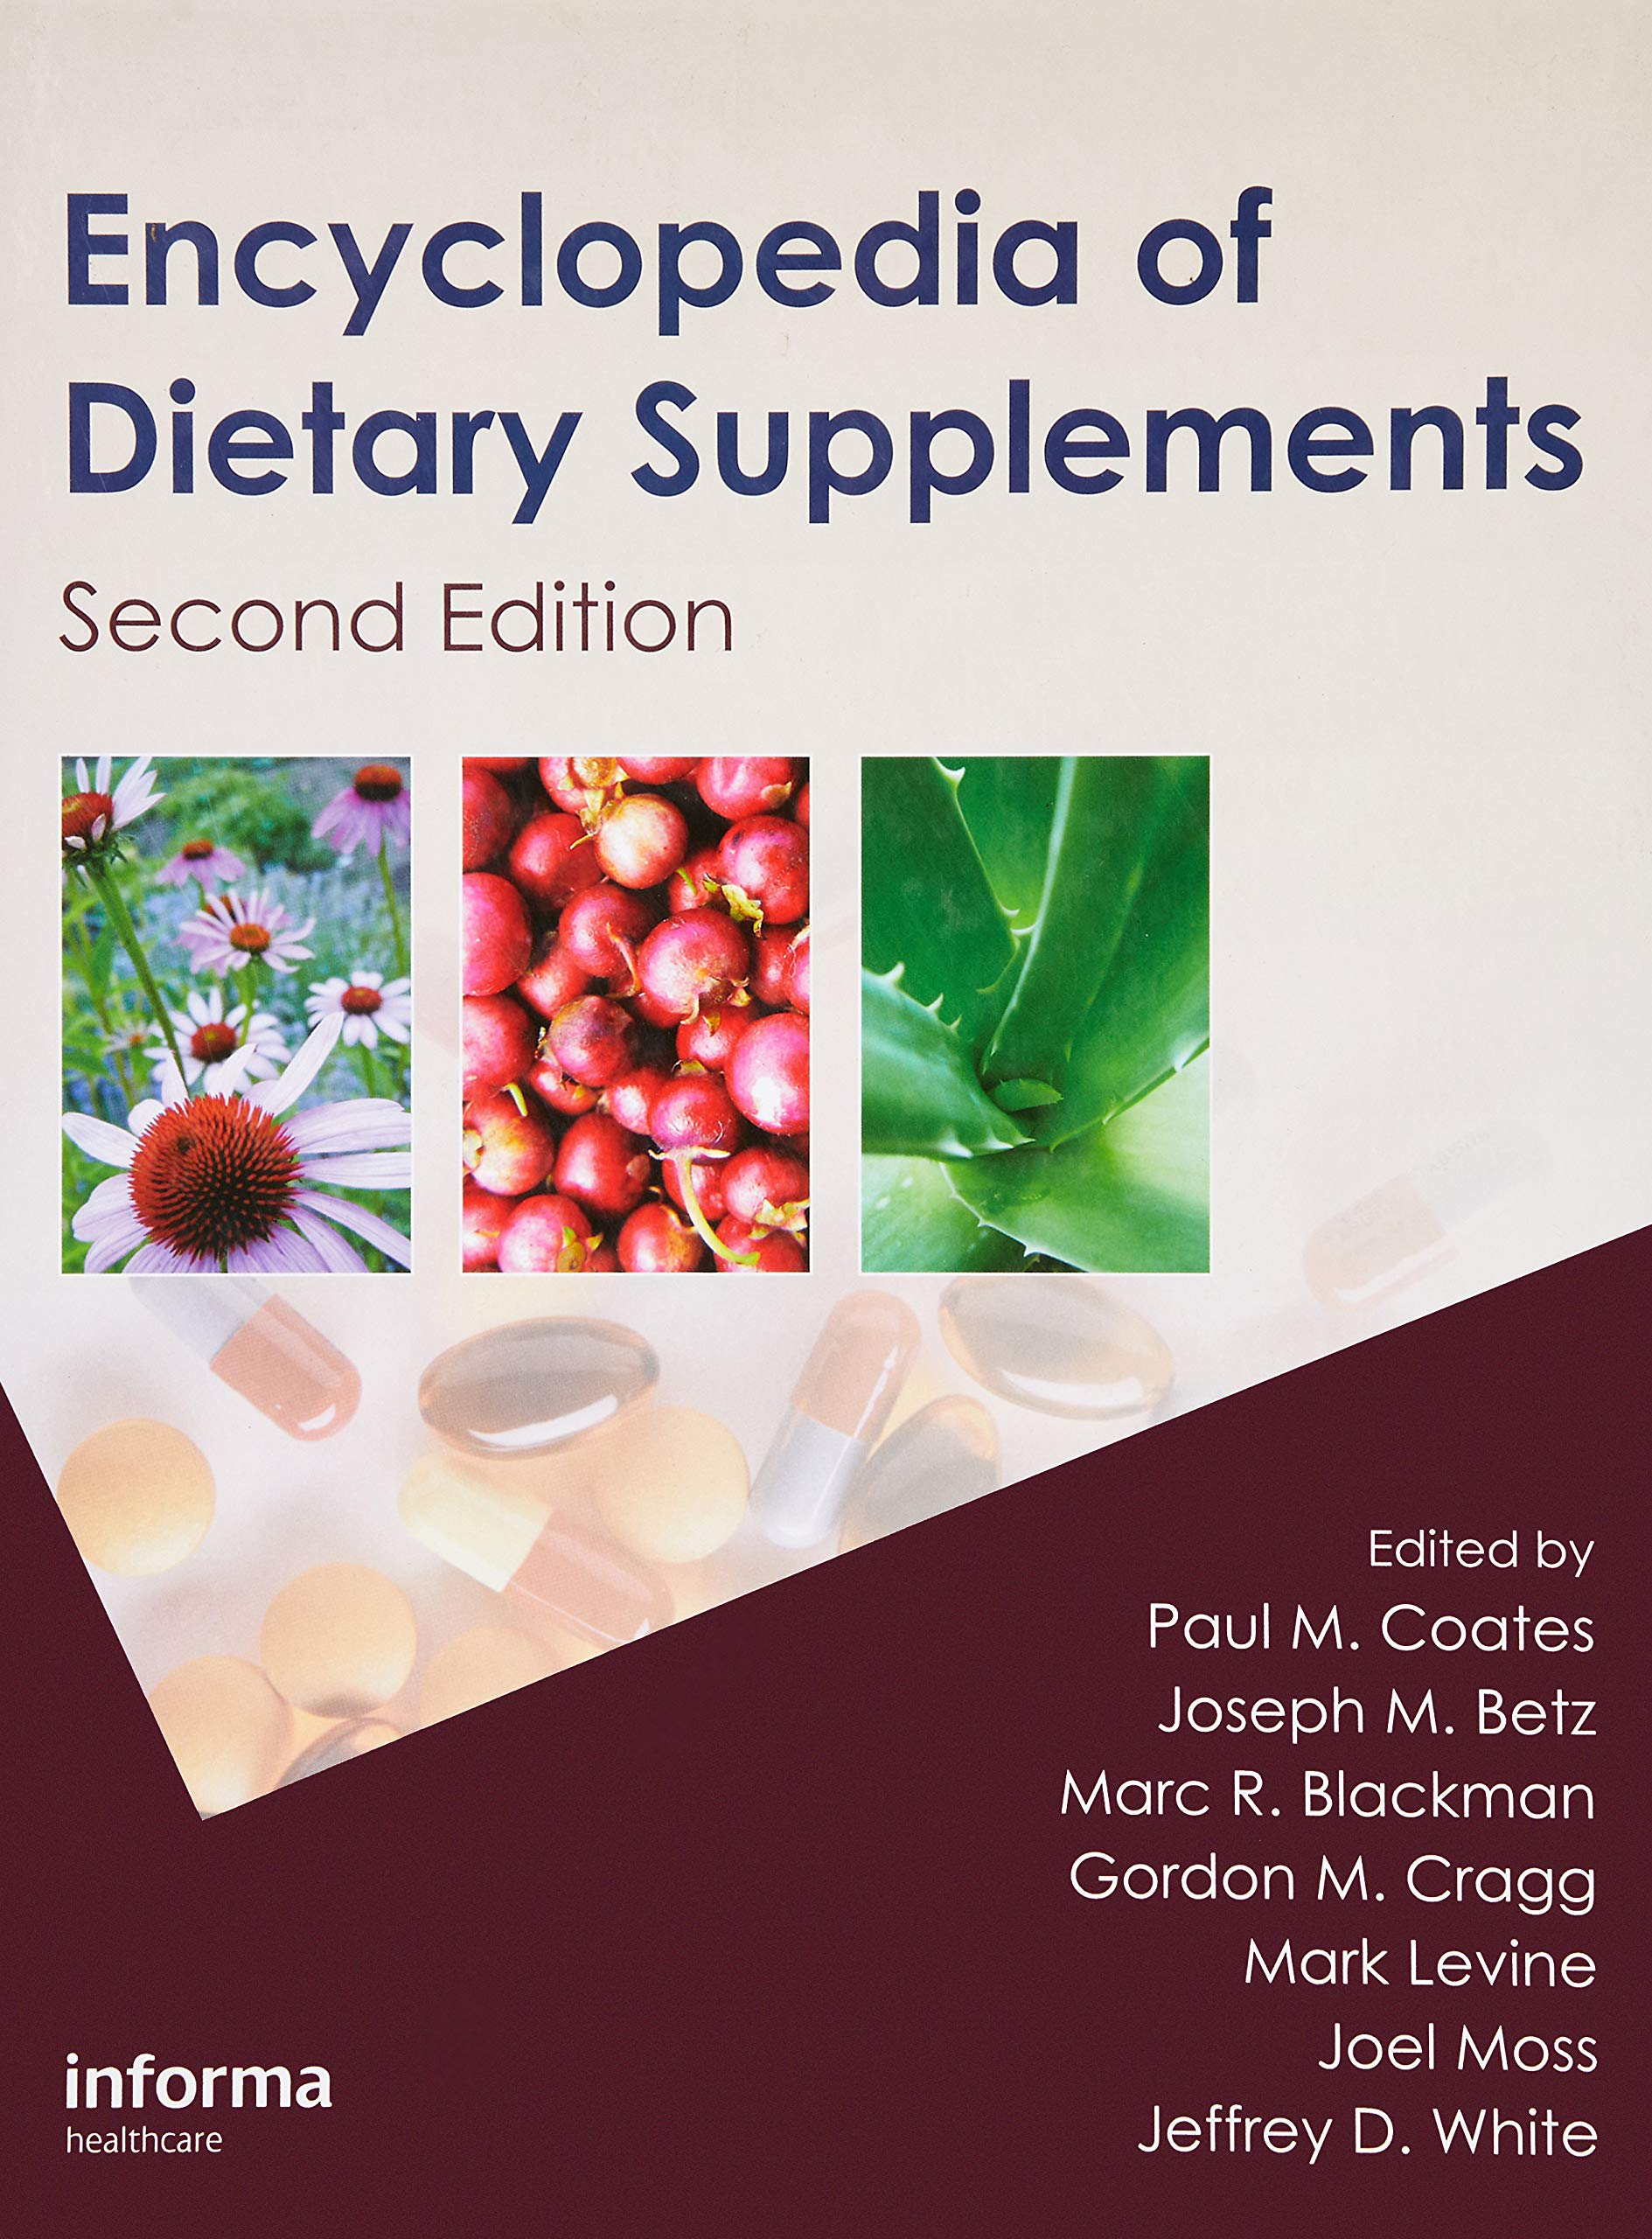 Encyclopedia of Dietary Supplements: Amazon.es: Paul M. Coates, Joseph M. Betz, Marc R. Blackman, Gordon M. Cragg, Mark Levine, Joel Moss, Jeffrey D. White: ...